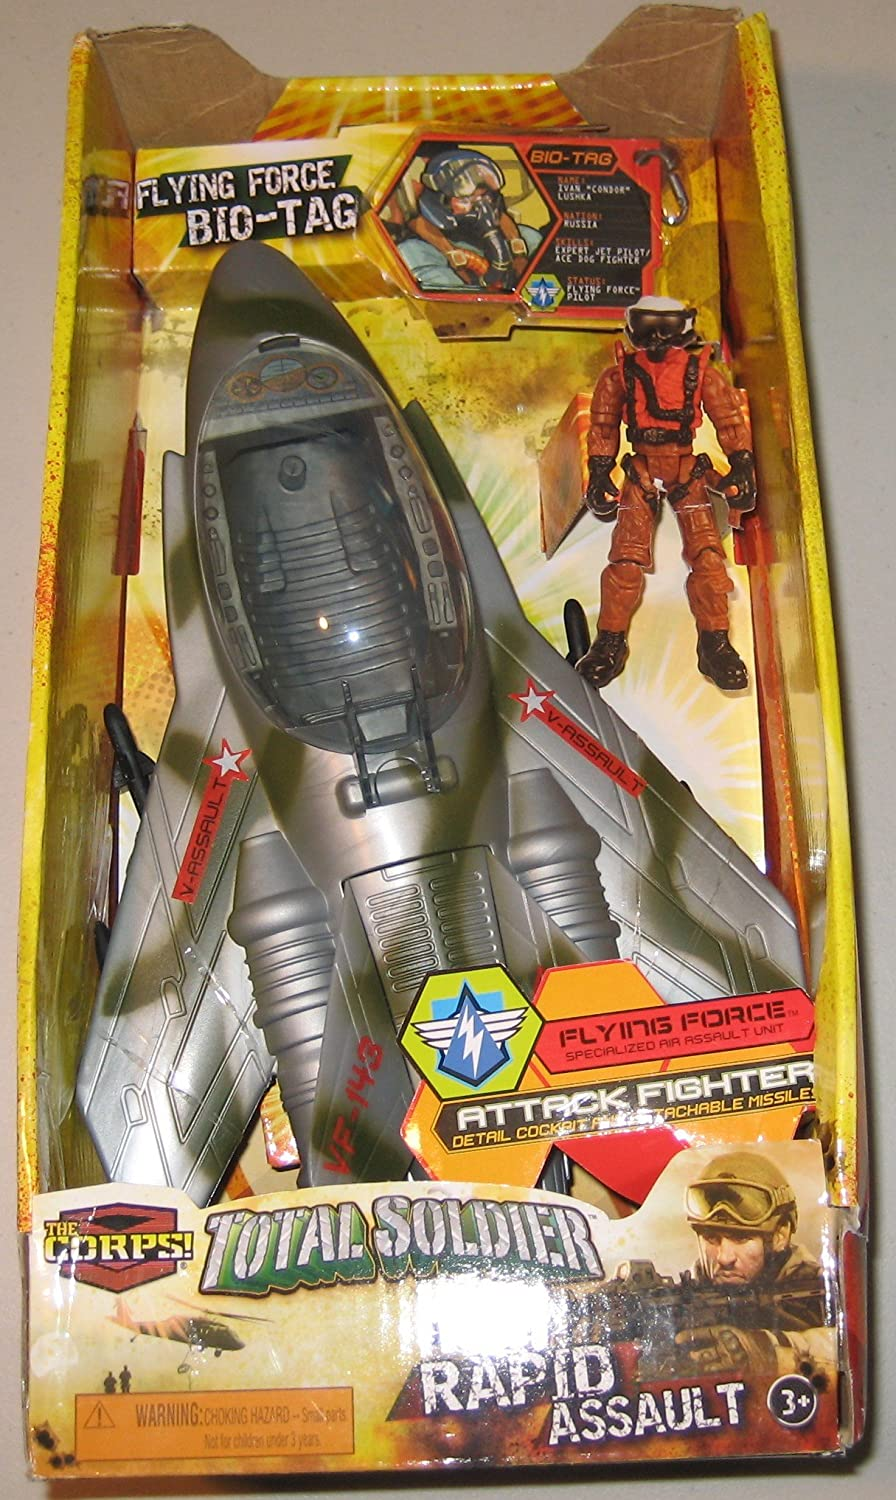 The Corps Total Soldier Rapid Assault Attack Fighter Plane